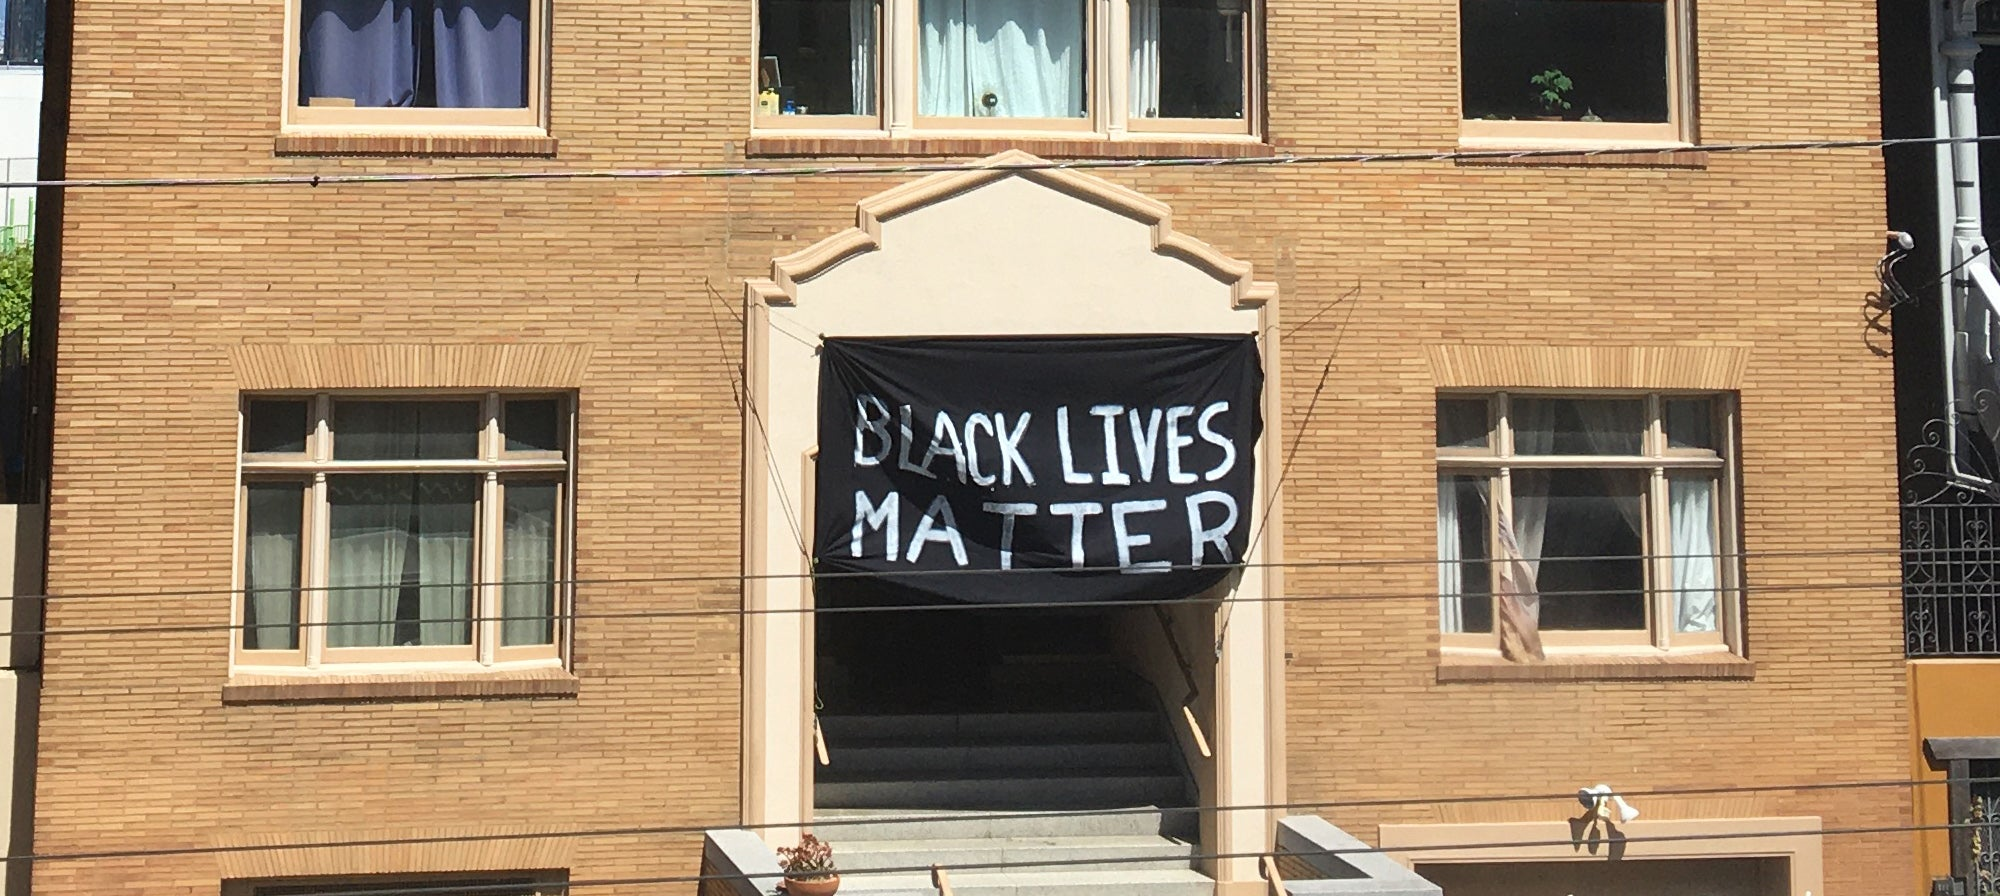 A Black Lives Matter banner hangs on the front of a brick building